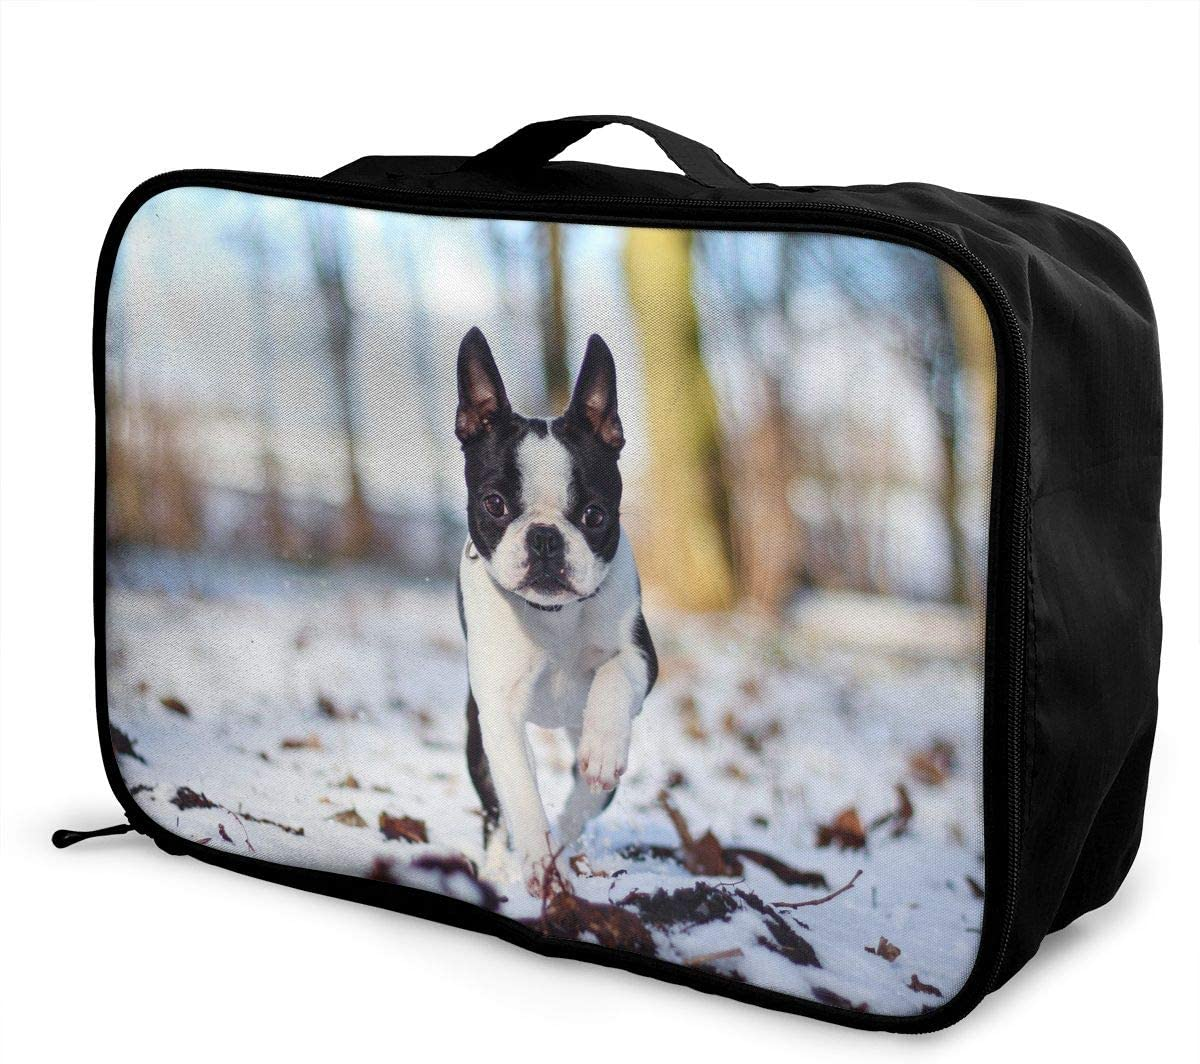 French Bulldog Travel Carry-on Luggage Weekender Bag Overnight Tote Flight Duffel In Trolley Handle